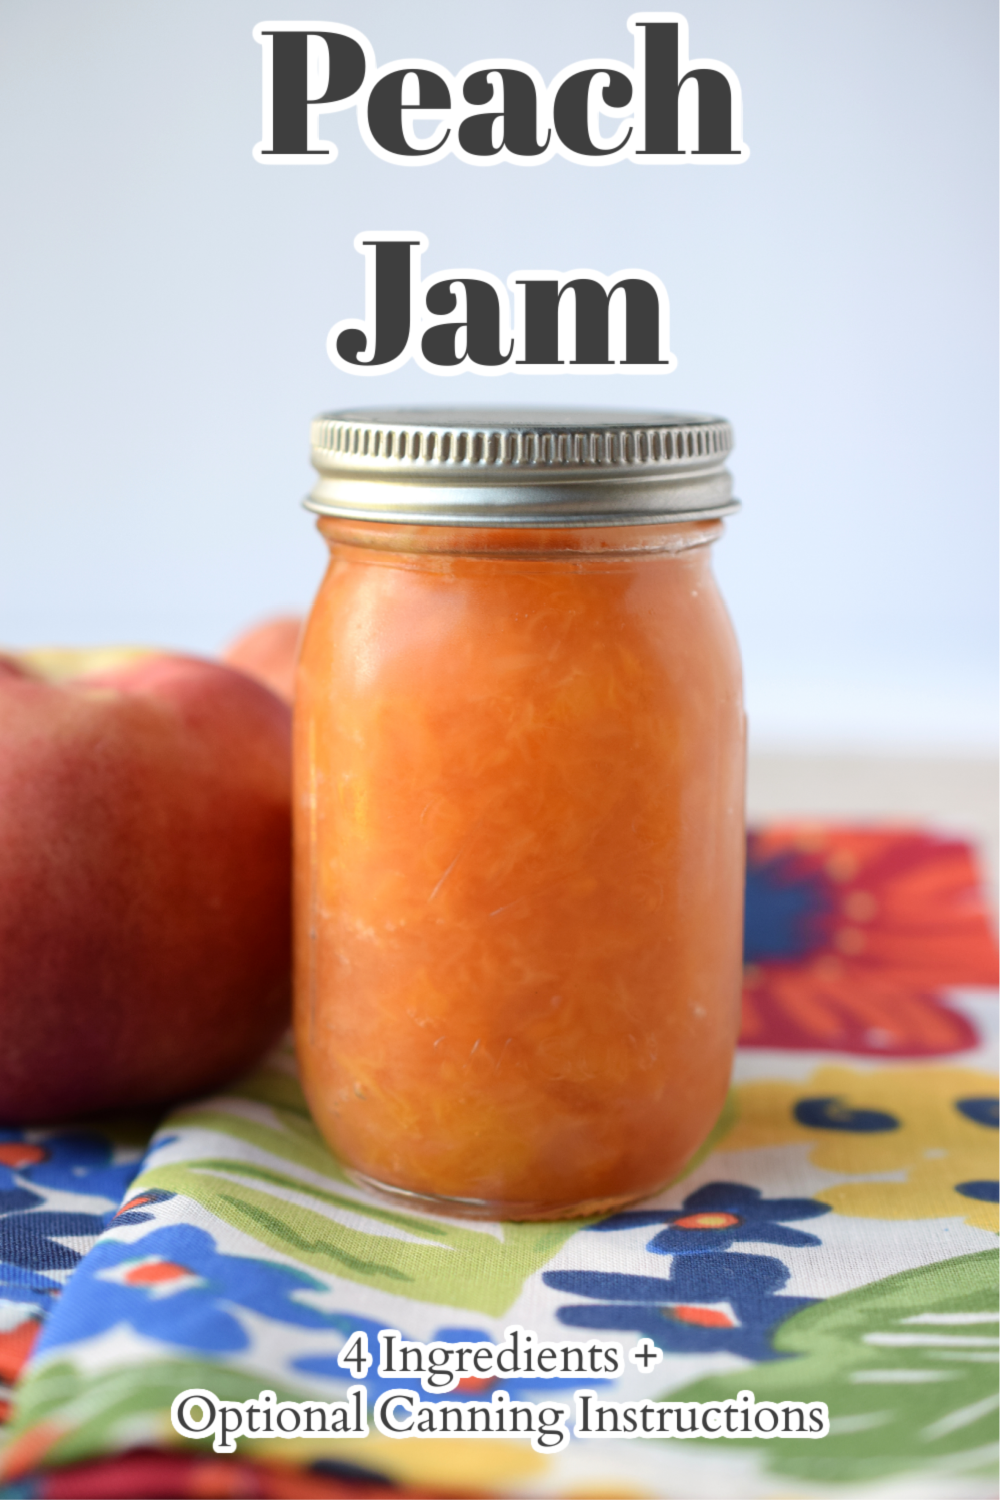 Peach Jam (+ Optional Canning Instructions) – Delicious homemade jam made with just 4 simple ingredients. This classic recipe can either be canned or immediately used! Peach Jam Recipe | Homemade Jam | Peach Recipes